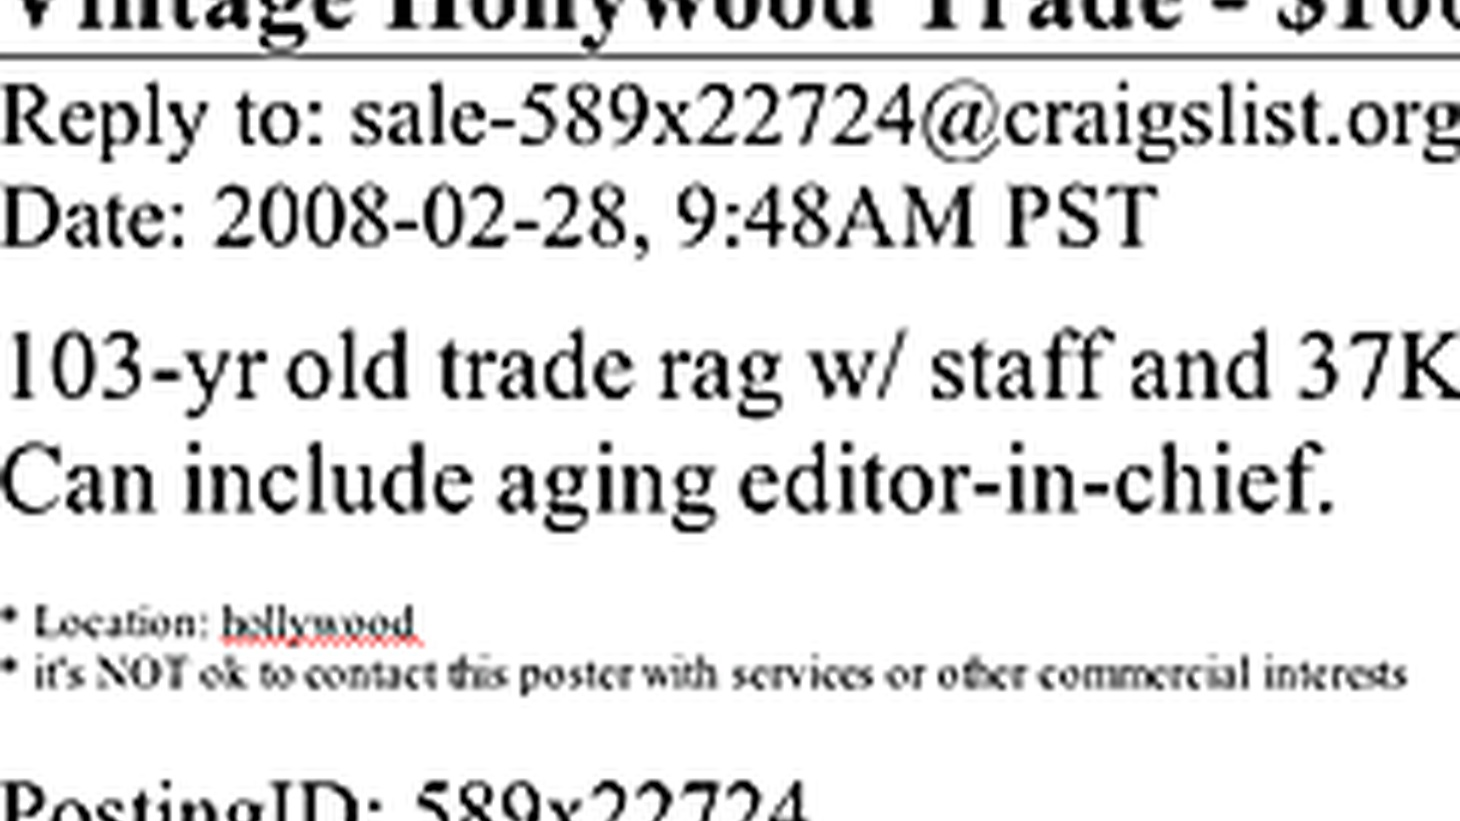 The venerable Hollywood trade paper, Variety, is up for sale. What will a new owner mean to the business? We'll have a lively conversation with blogger extraordinaire Nikki Finke and PR veteran Howard Bragman. Plus, which Oscar prognosticators predicted with paramount precision?